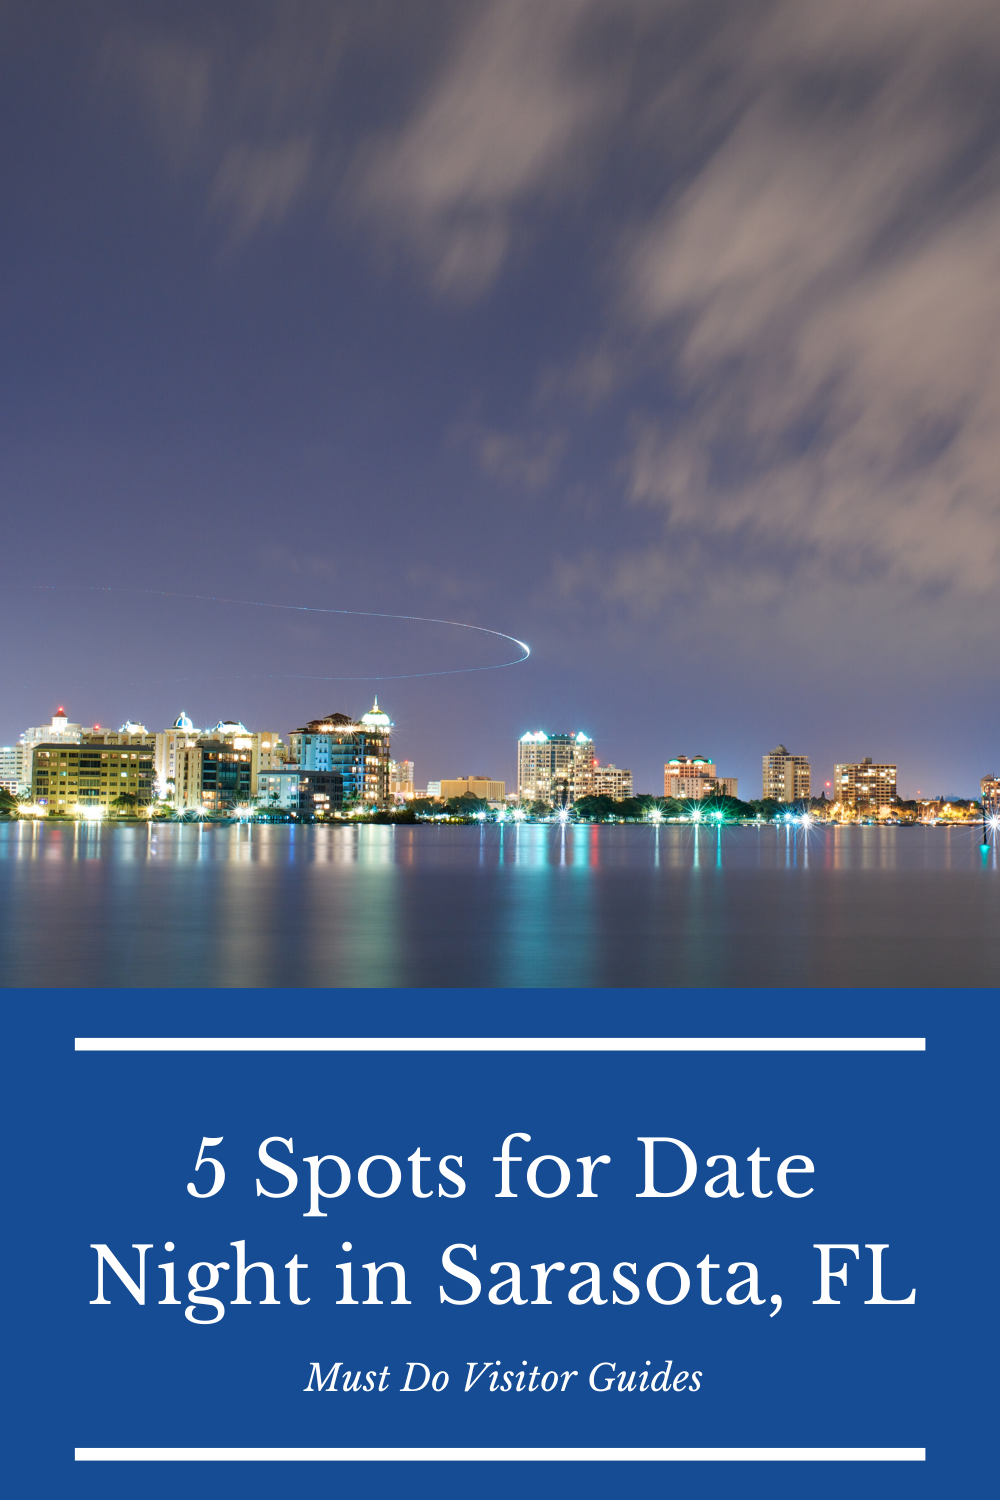 5 Best Spots for Date Night in Sarasota, FL. An intimate dinner, a movie, or a fun evening of adventure–Sarasota, Florida has a night out for every couple. Must Do Visitor Guides | MustDo.com